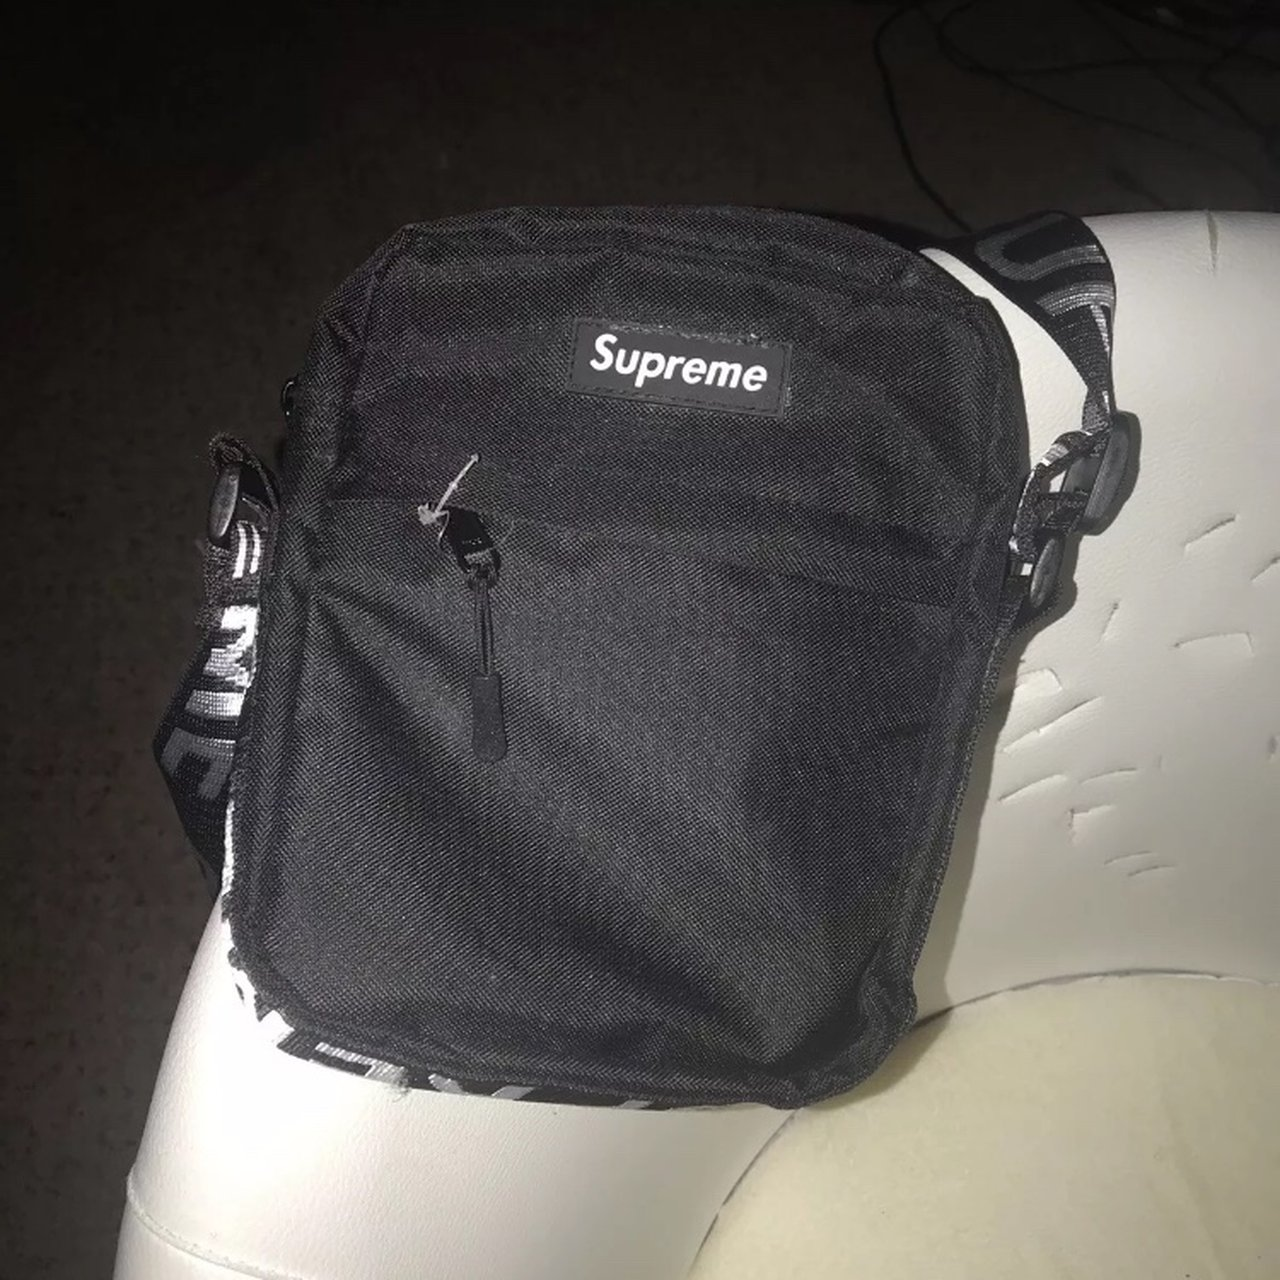 2e7122eb18e1 Supreme Messenger Bag - Black Used a few times for carrying - Depop